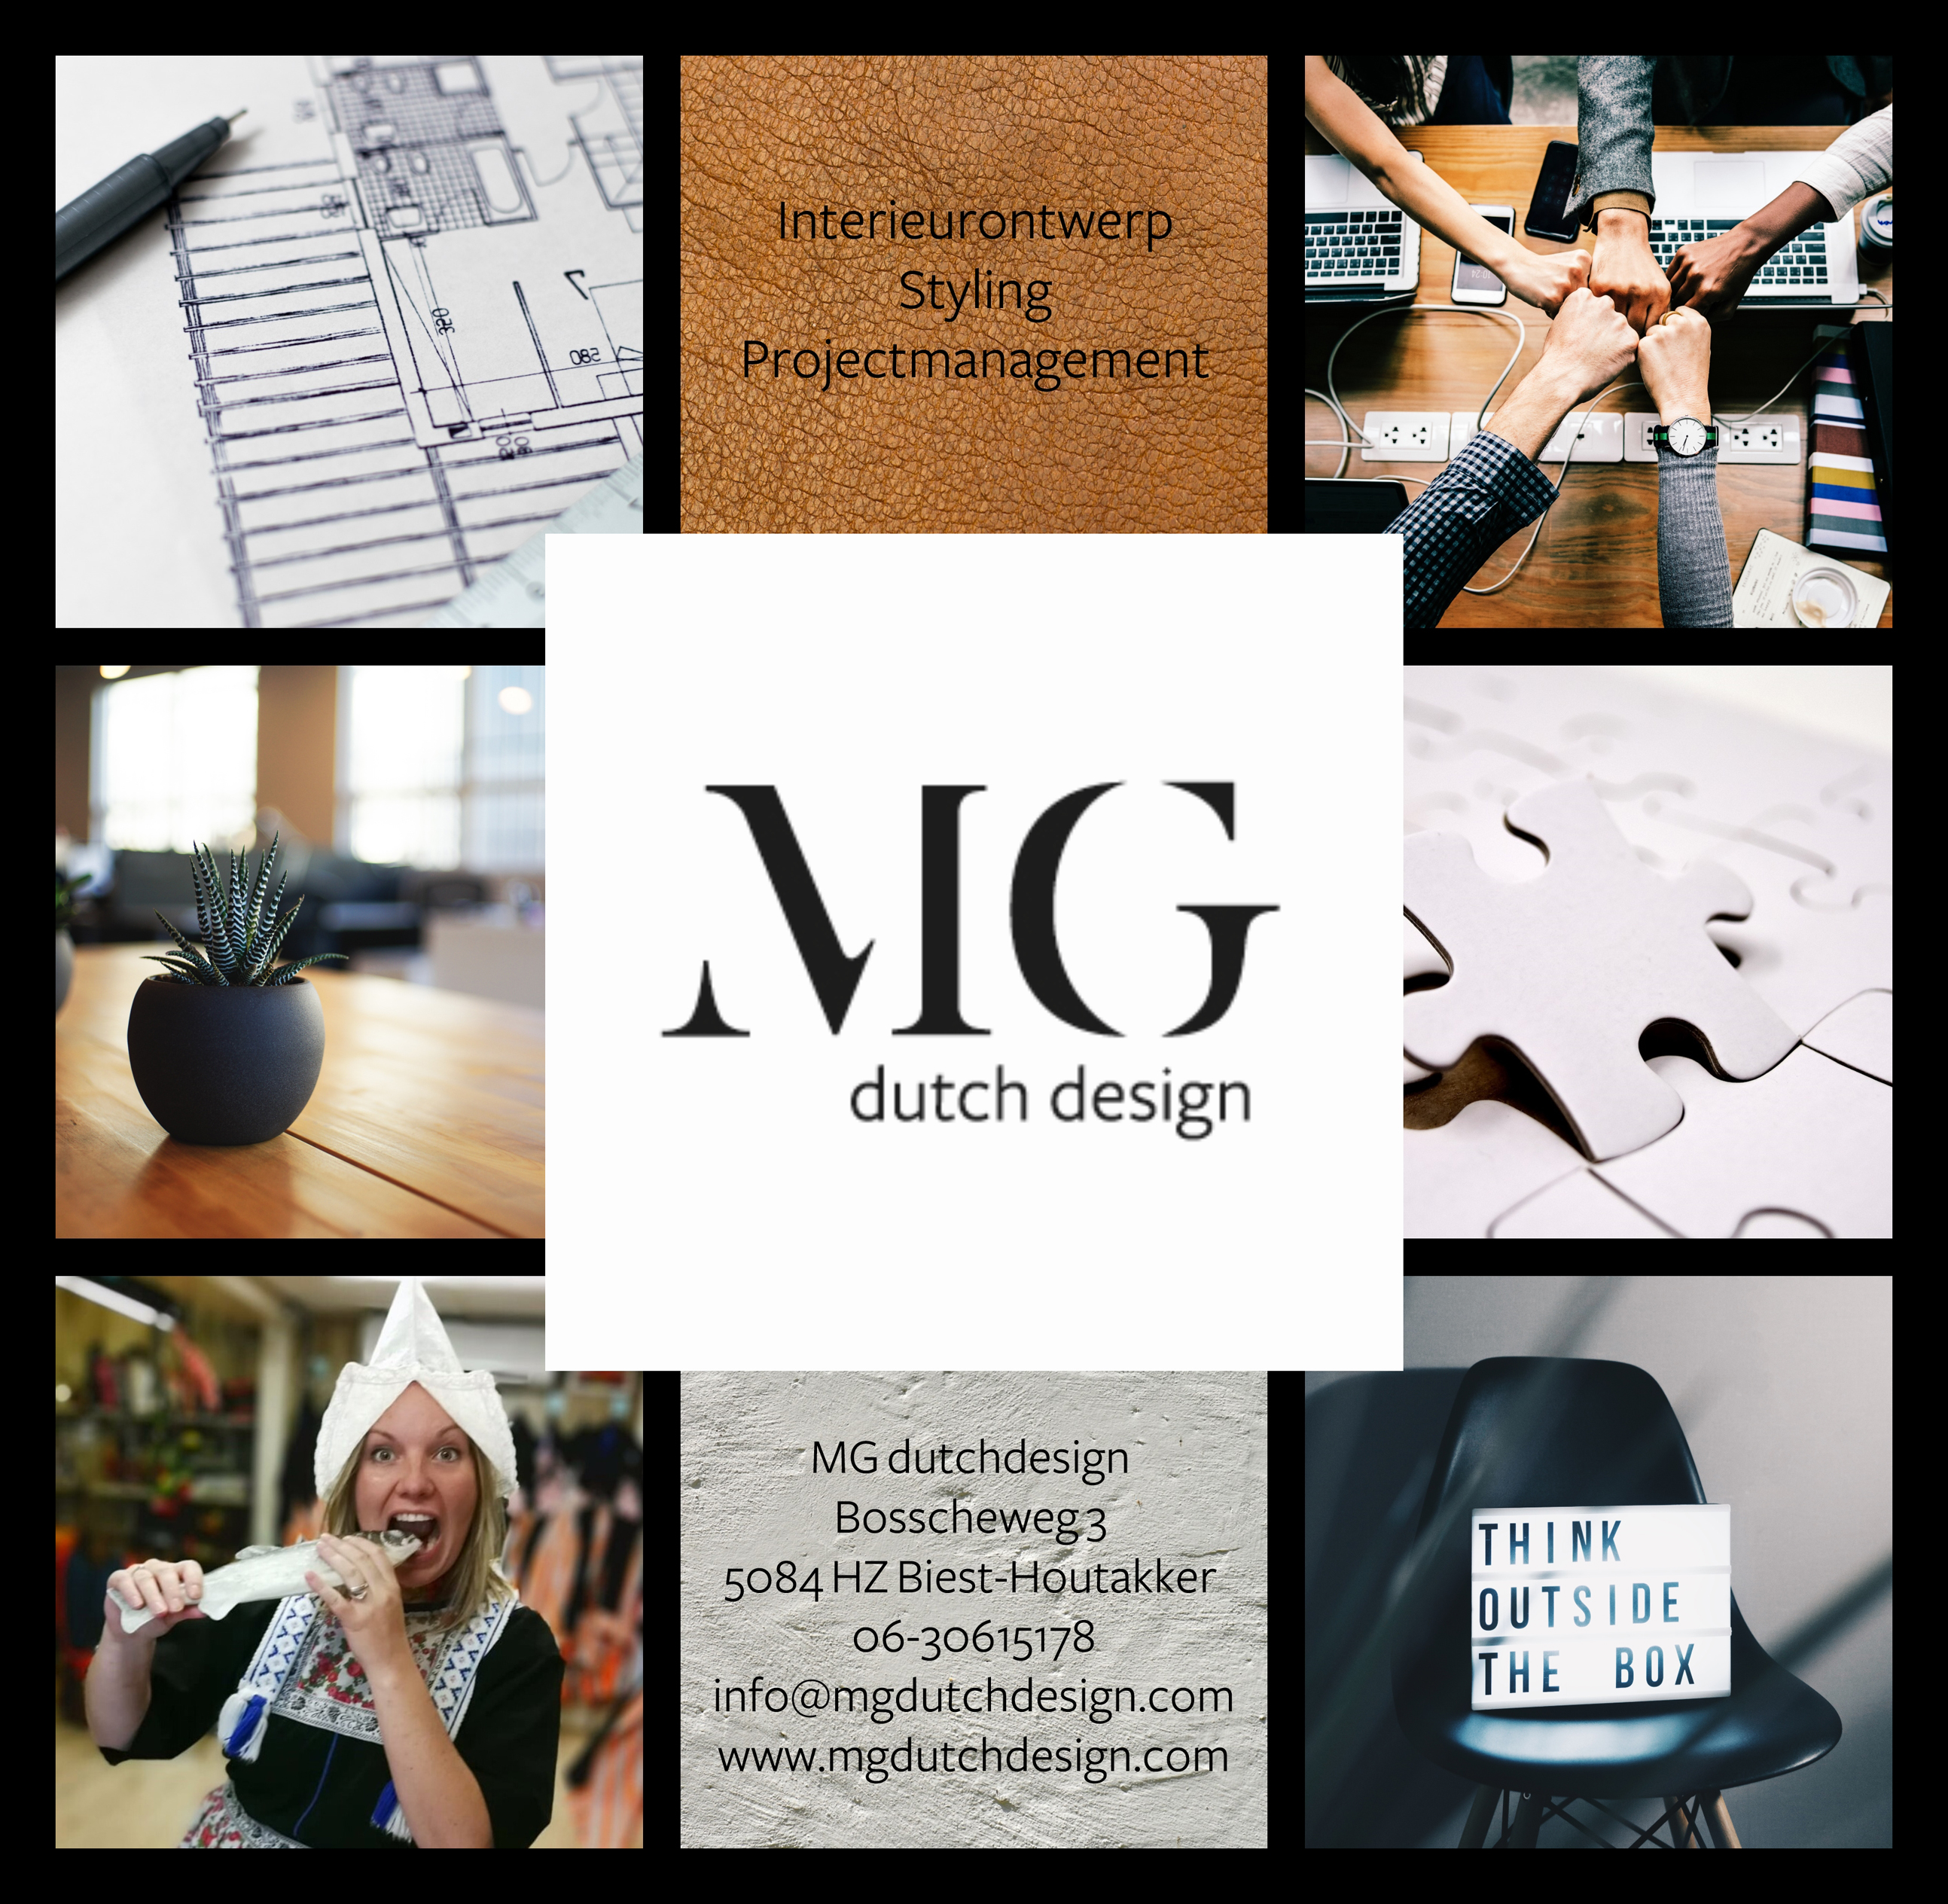 MG dutchdesign